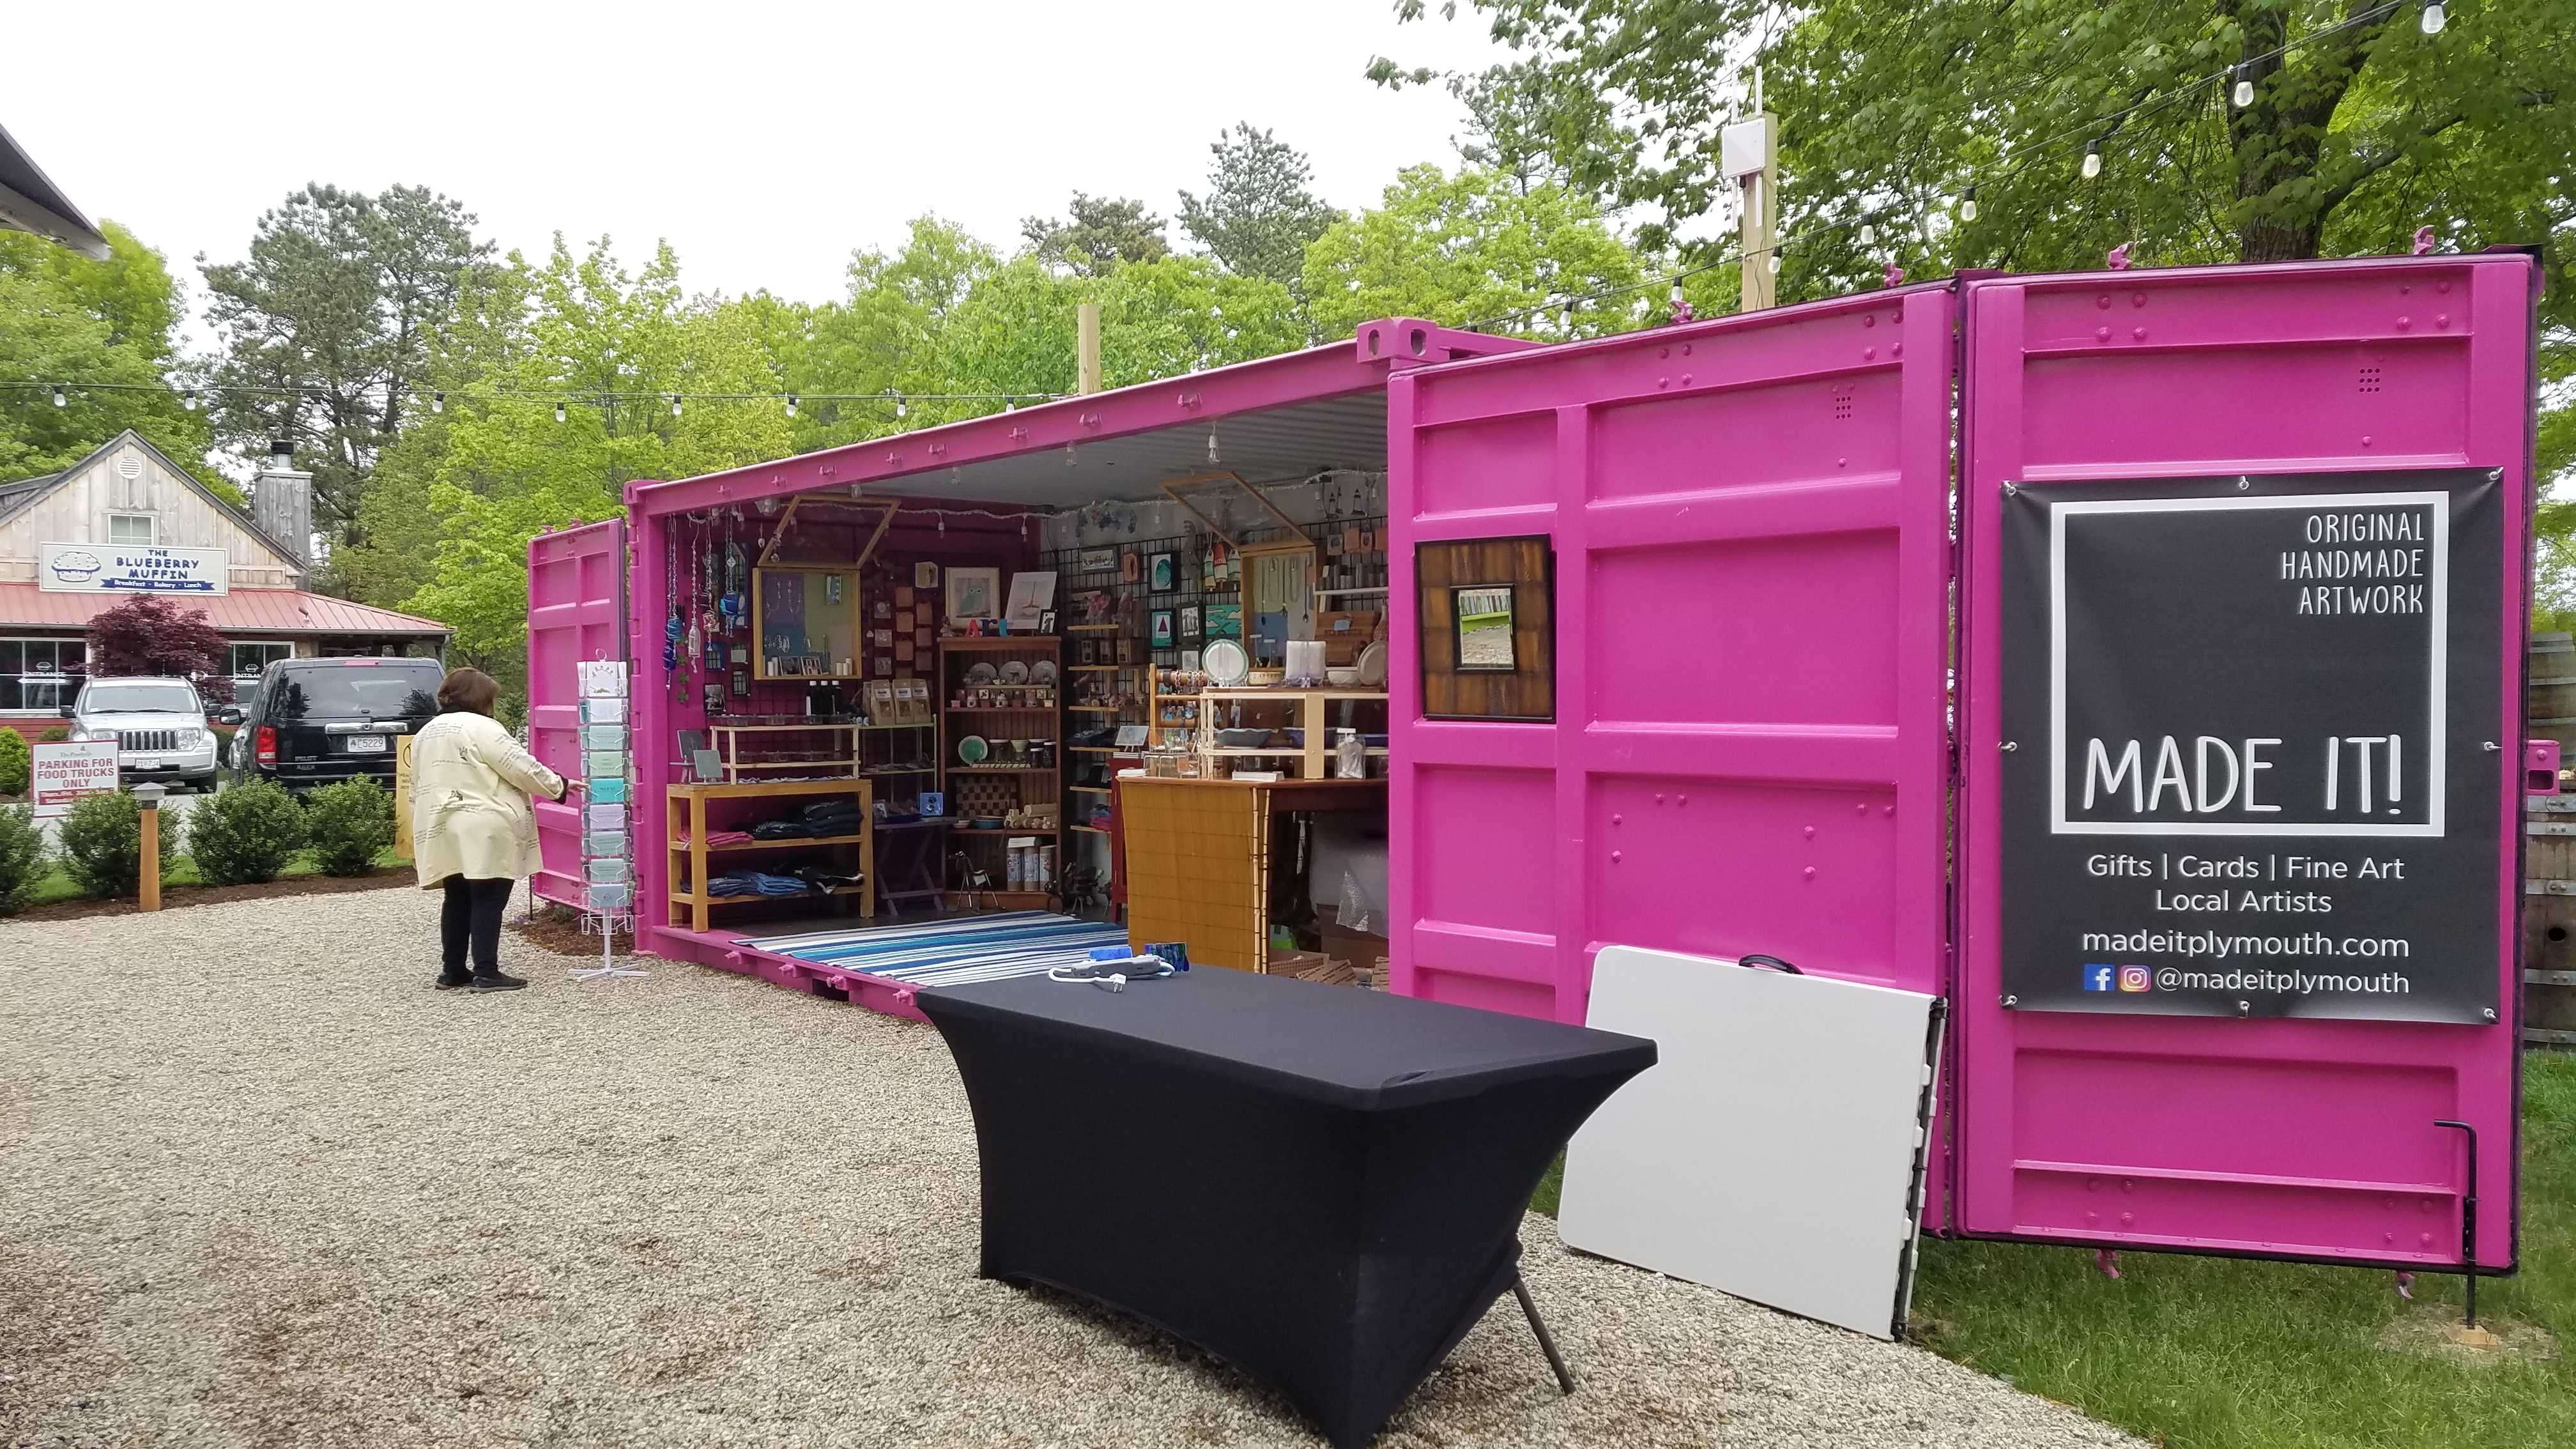 Look for the Made it! pop-up shop this summer on the Village Green